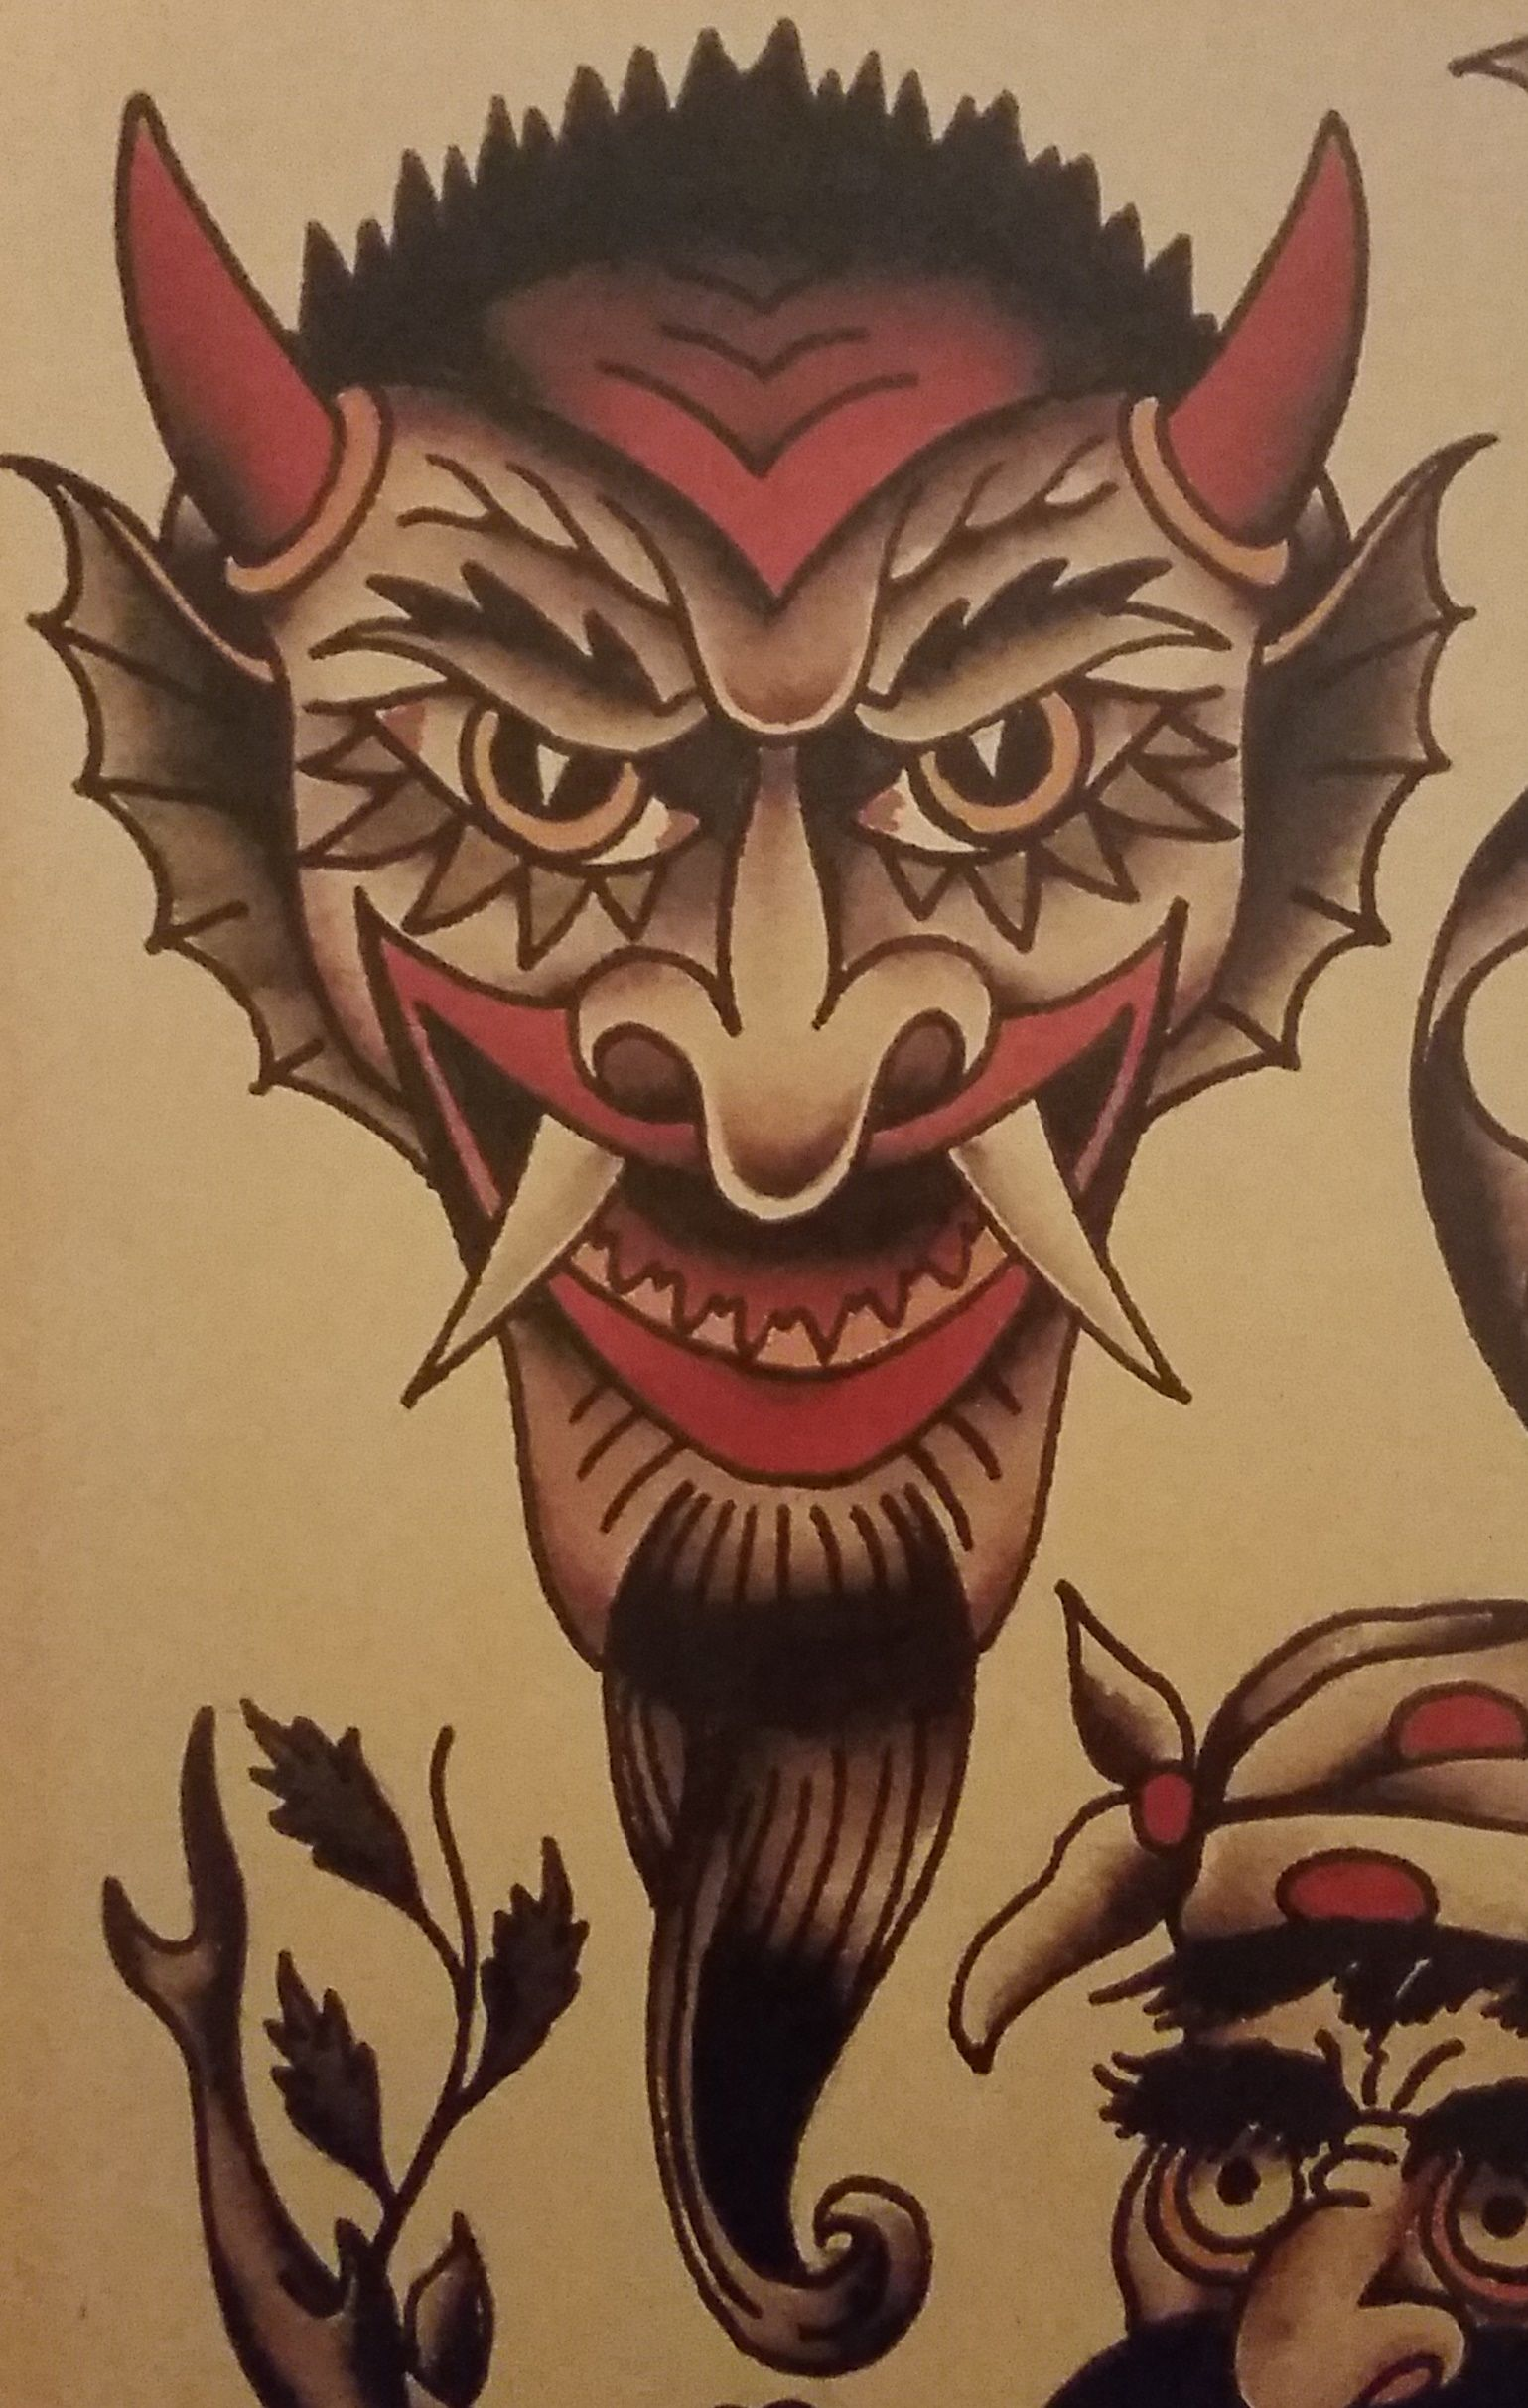 traditionalold school tattoo sailor jerry devil demon